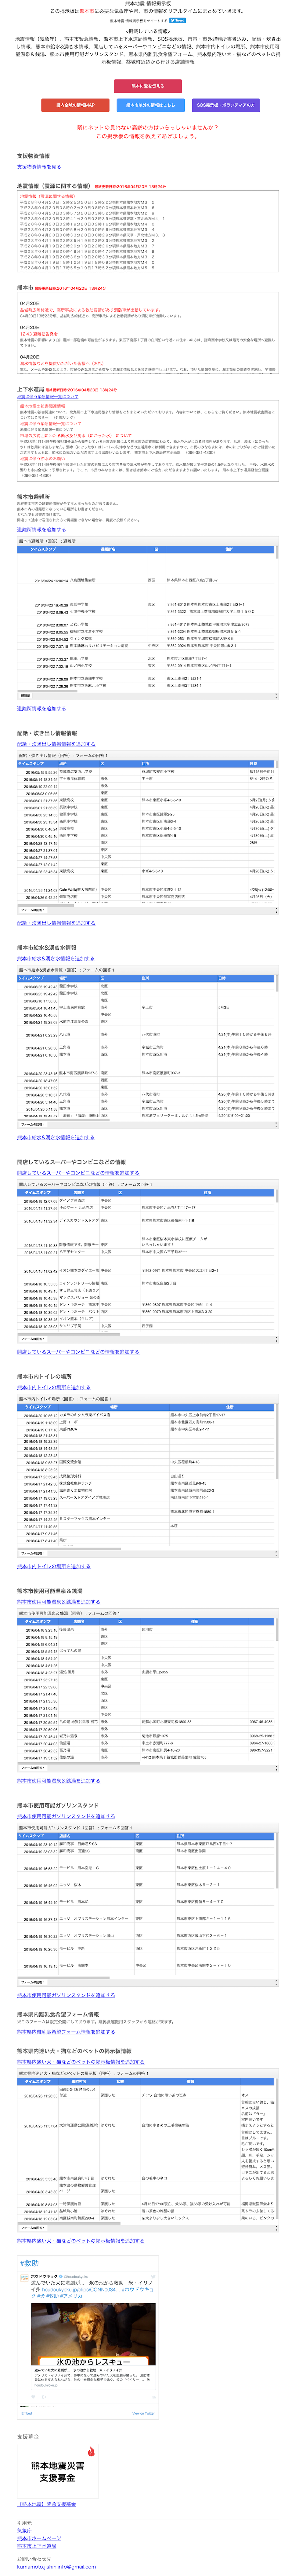 screencapture-localhost-3000-1481724999292.png